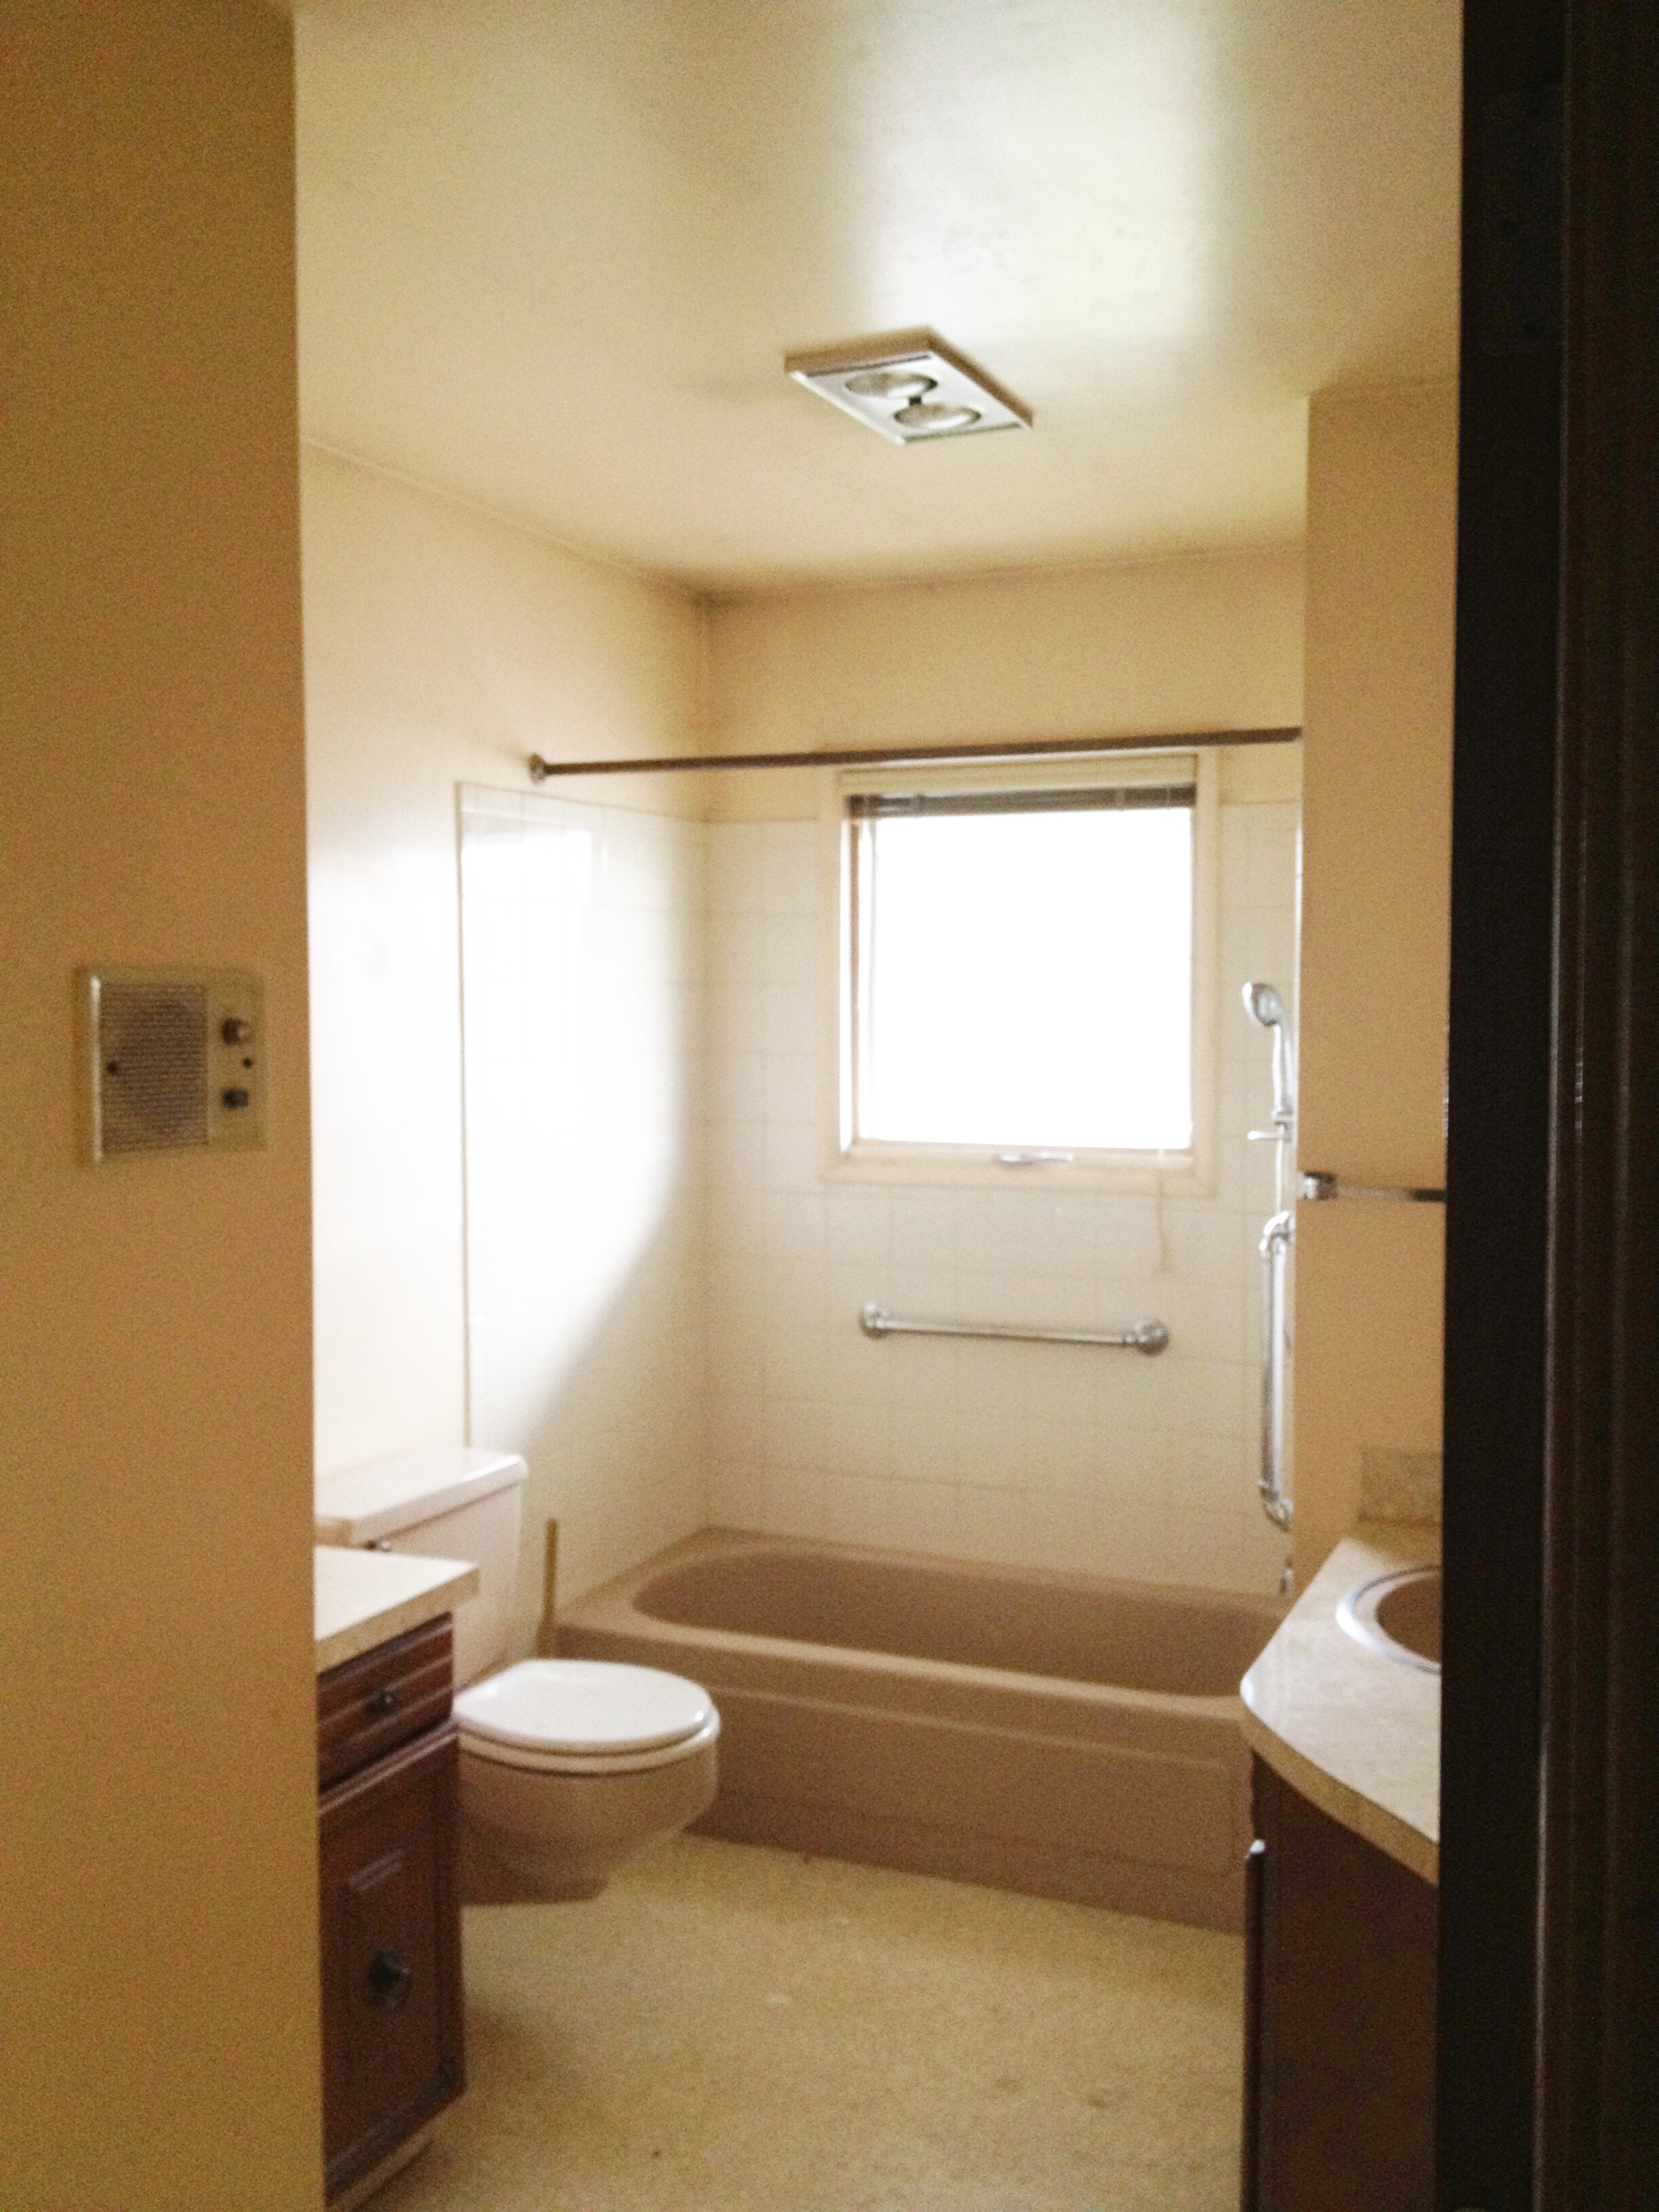 Before and After: Pink bathroom #2 goes family friendly